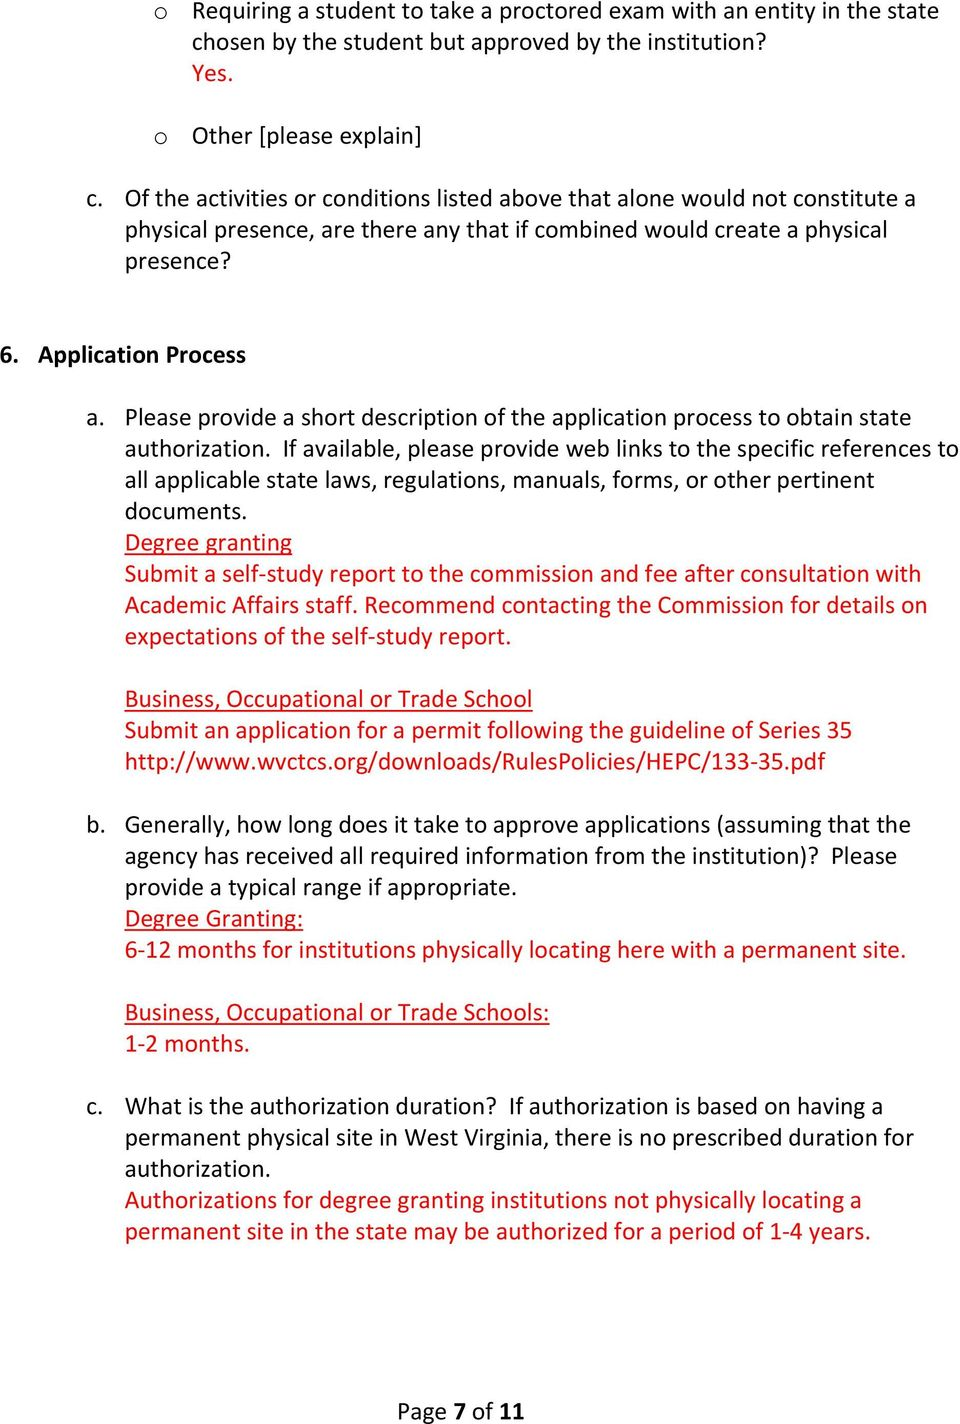 Please provide a short description of the application process to obtain state authorization.